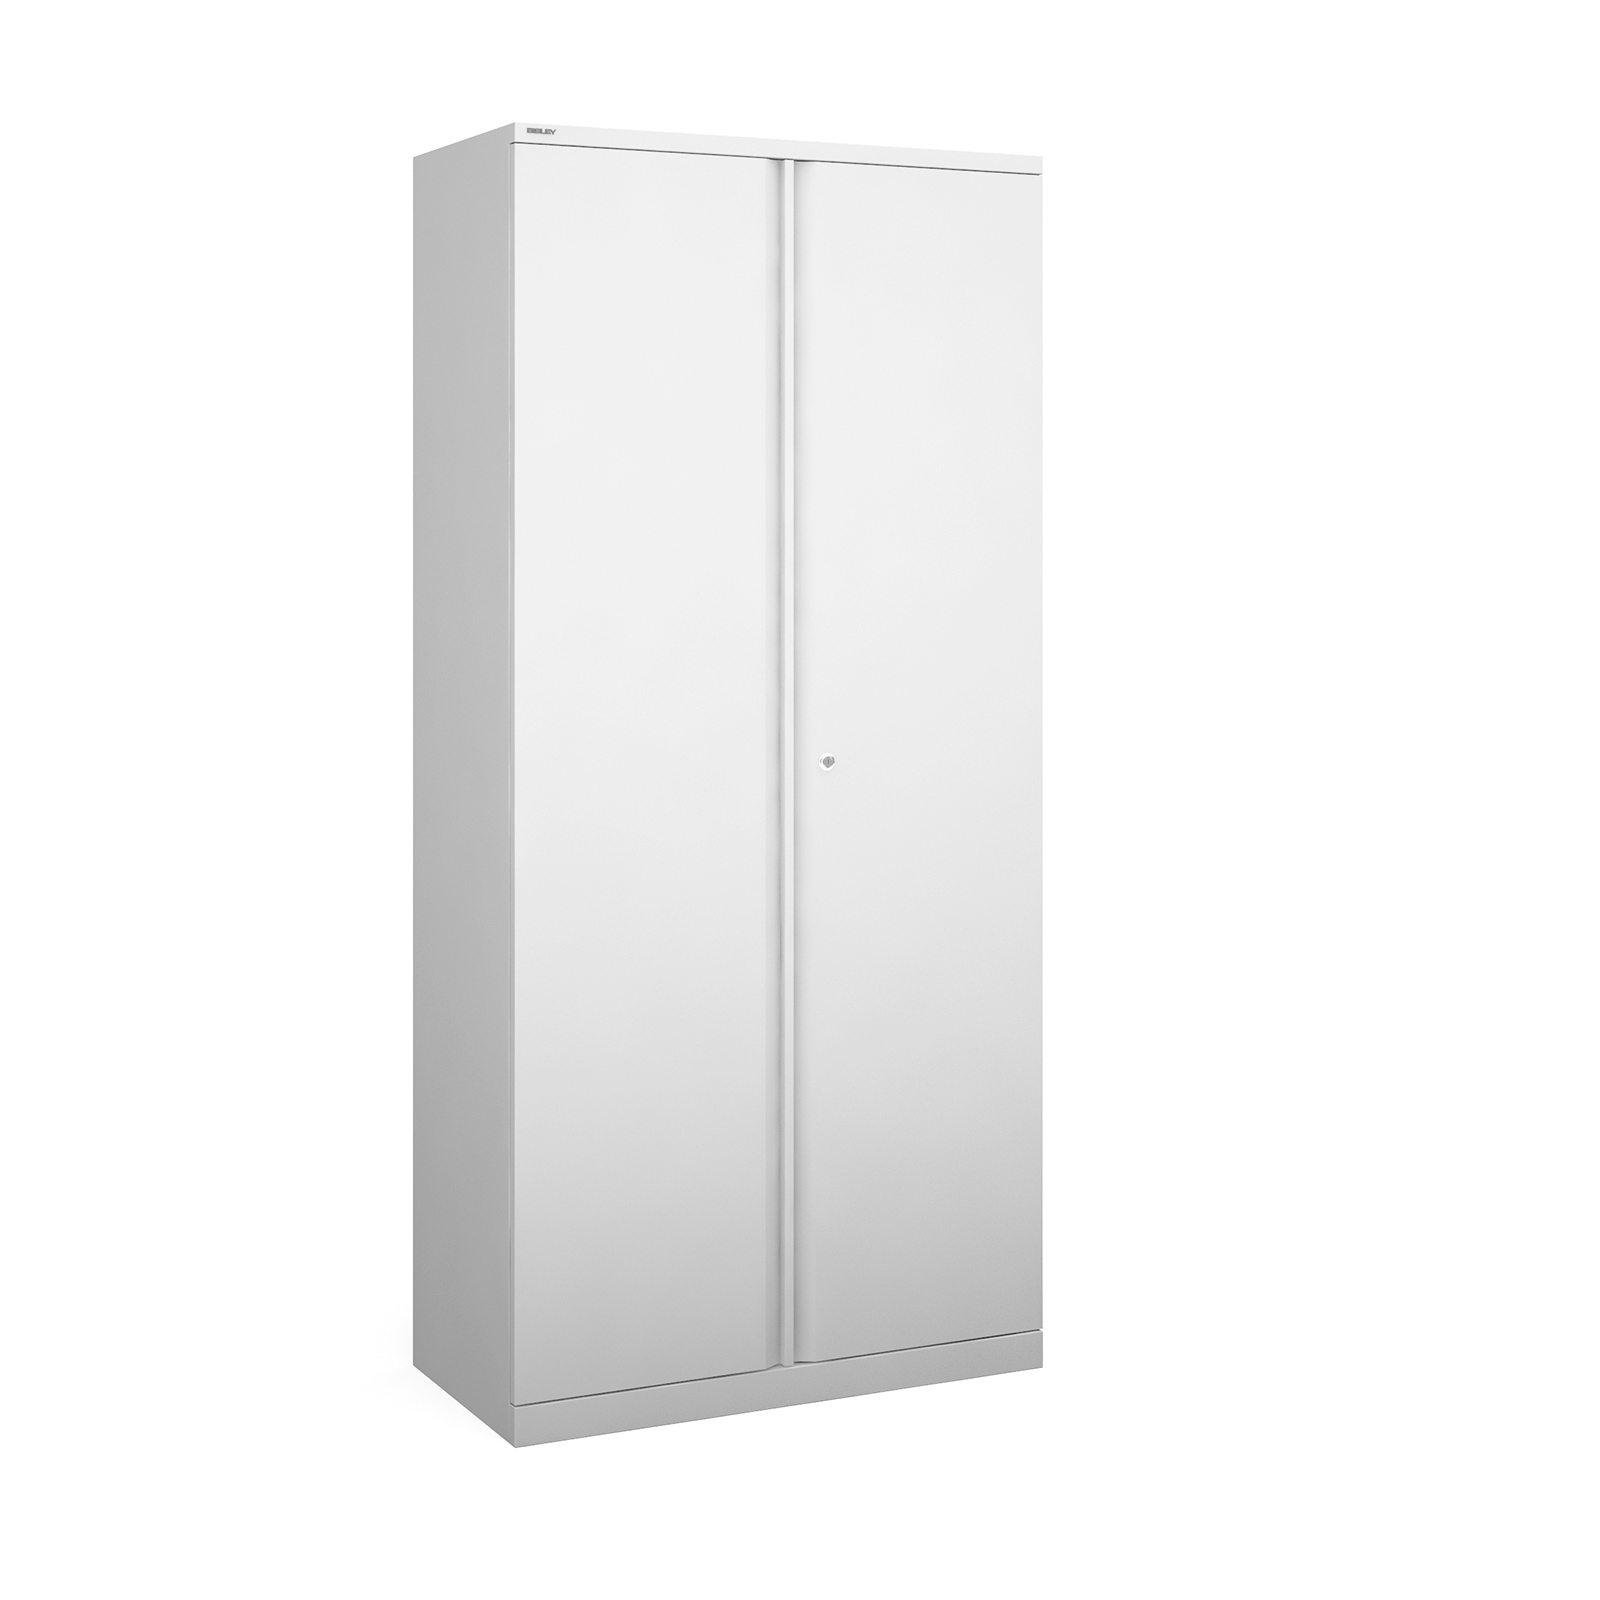 Bisley systems storage high cupboard 1970mm high - white